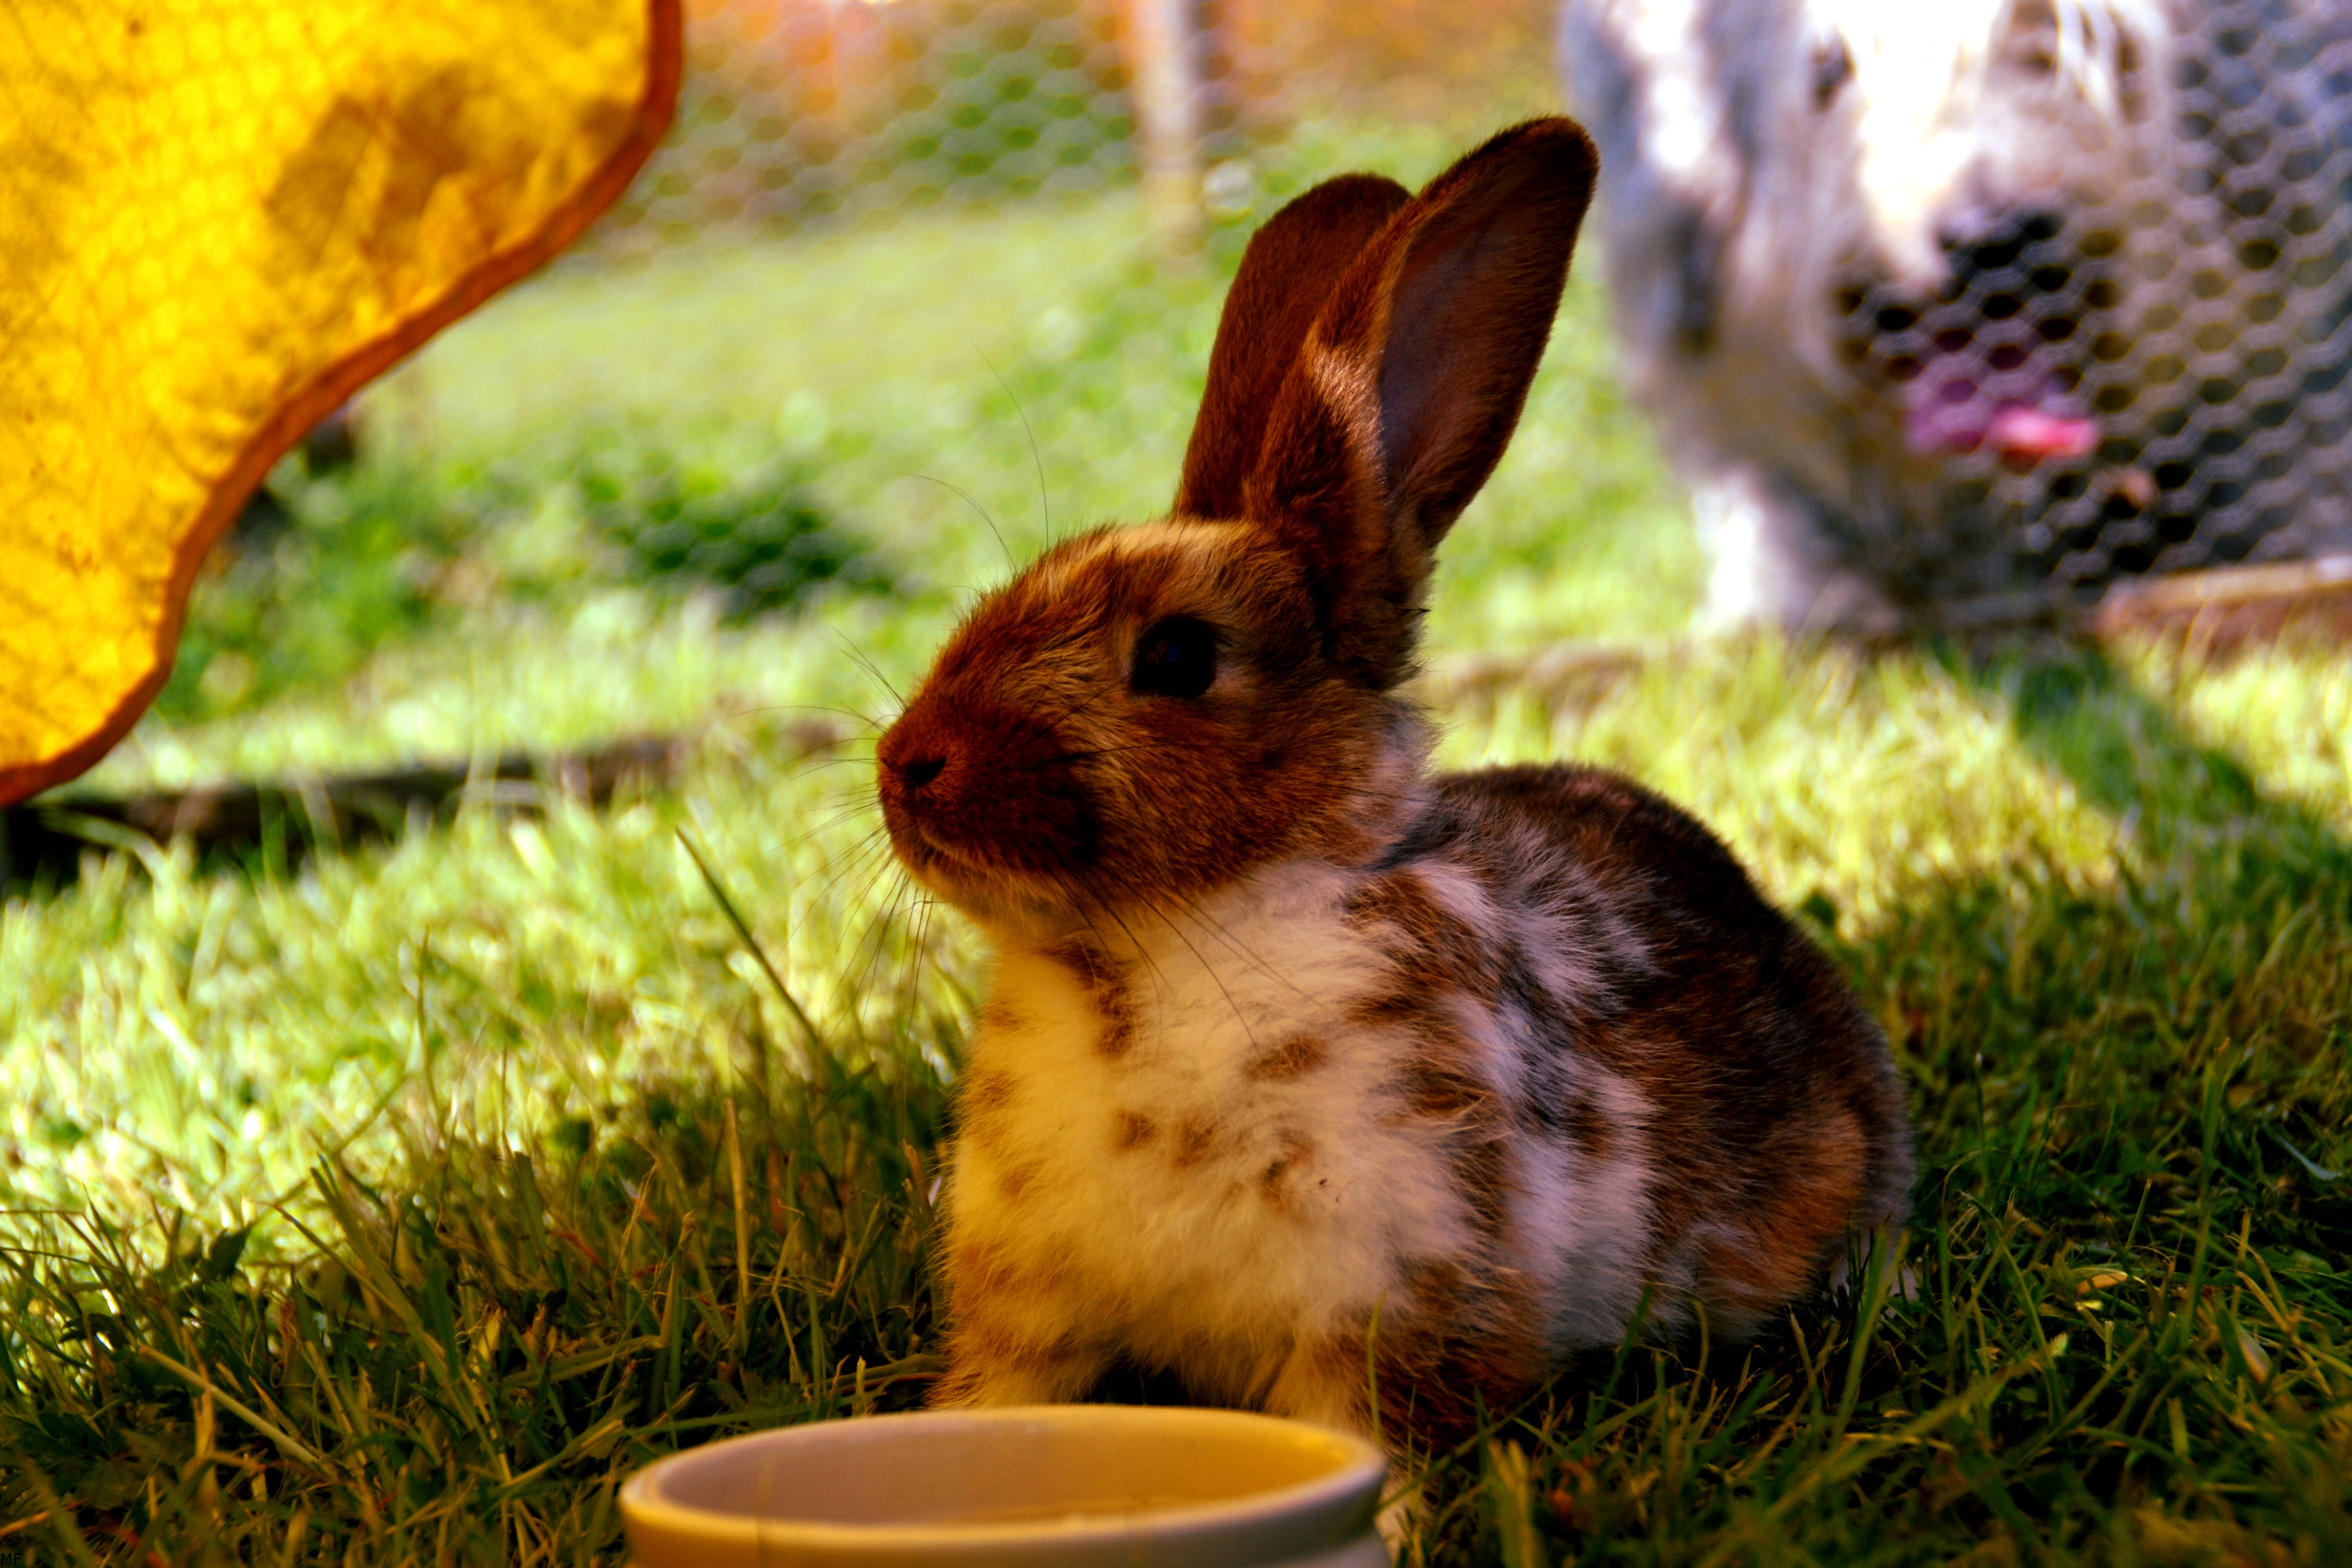 Brown and White Rabbit on Green Grass